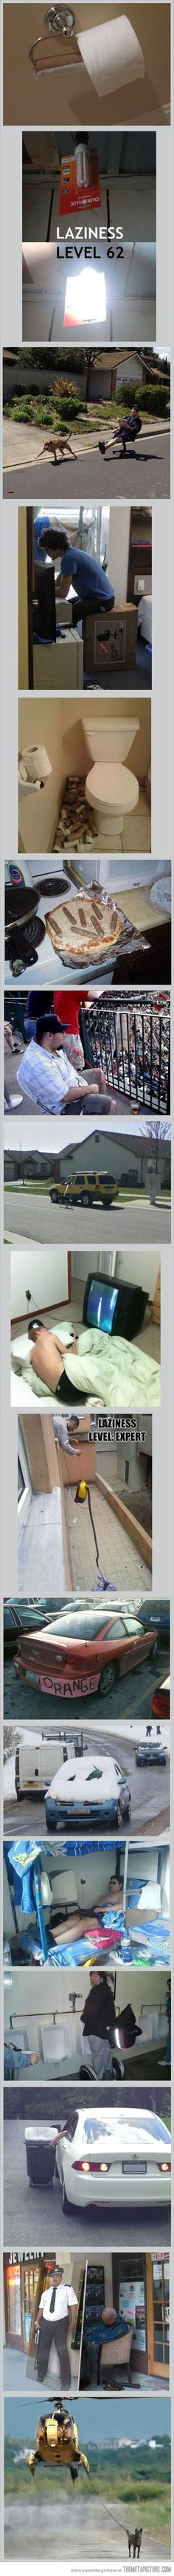 17 Acts Of Epic Laziness on http://seriouslyforreal.com/funny/17-acts-of-epic-laziness/